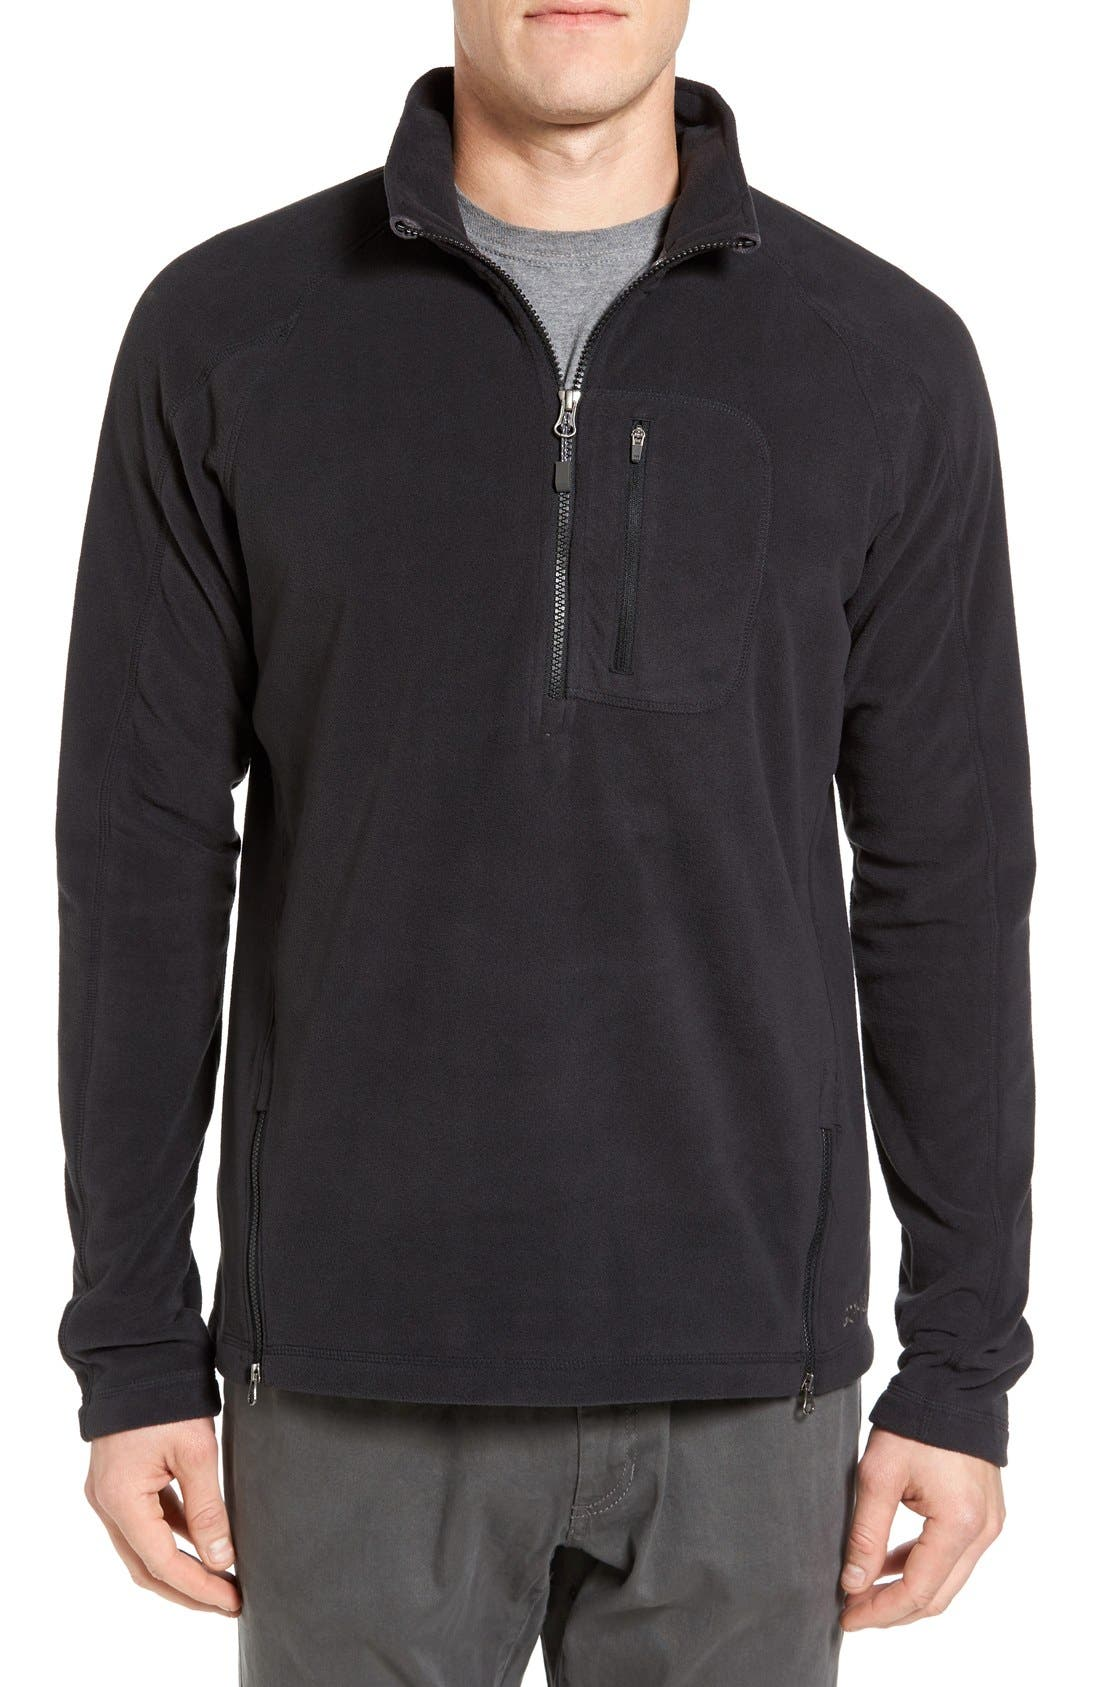 Utility Quarter Zip Fleece Sweater,                         Main,                         color, Black